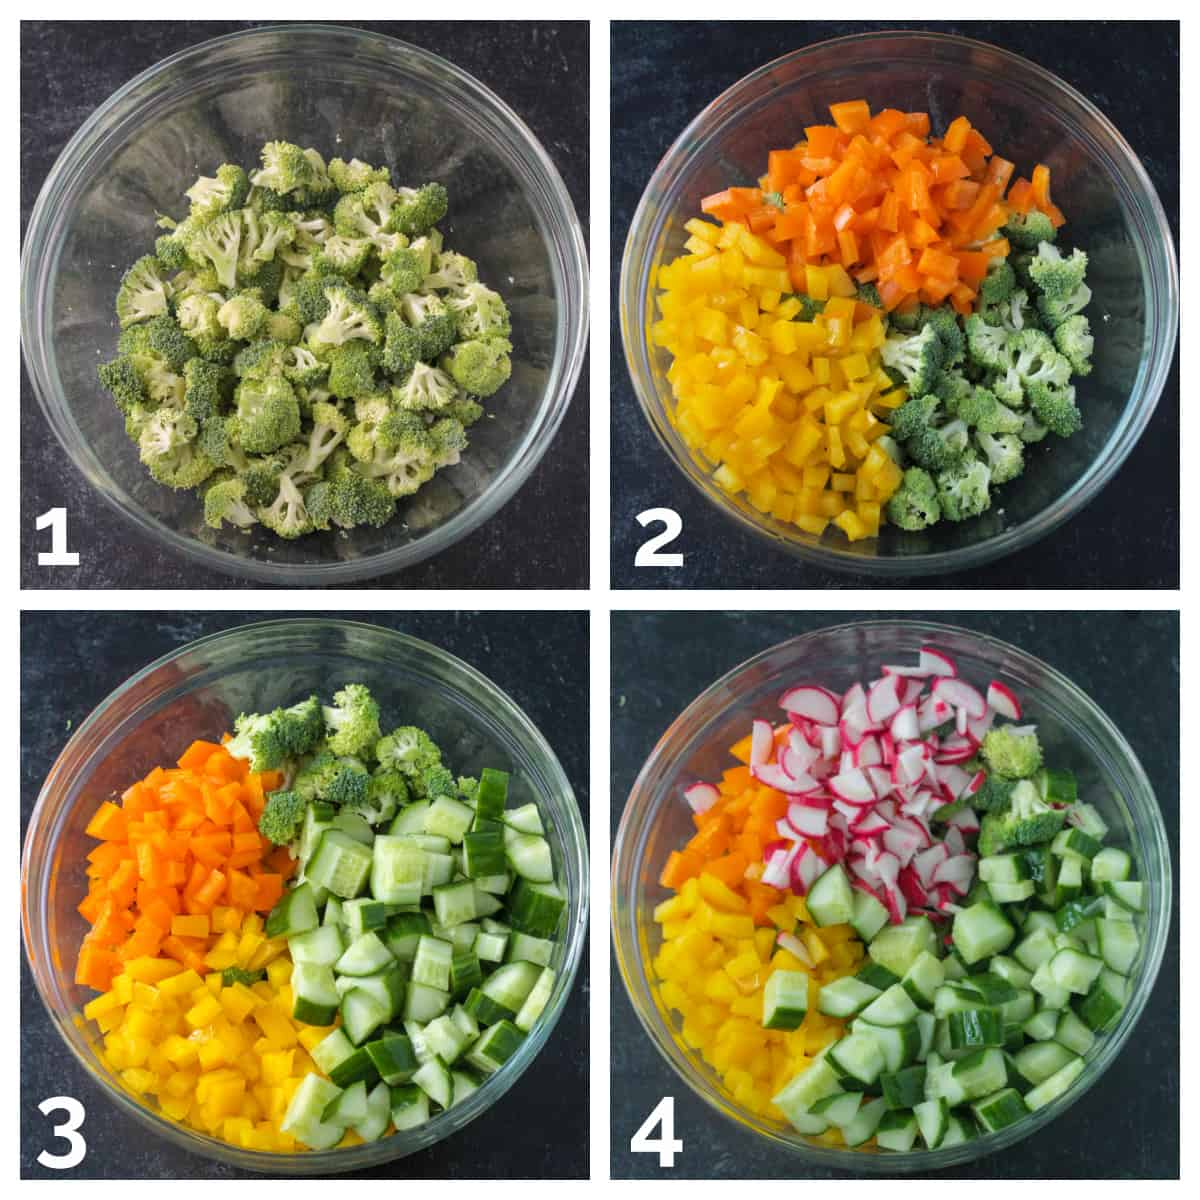 4 photo collage of adding chopped broccoli, bell peppers, cucumbers, and radishes to a bowl.